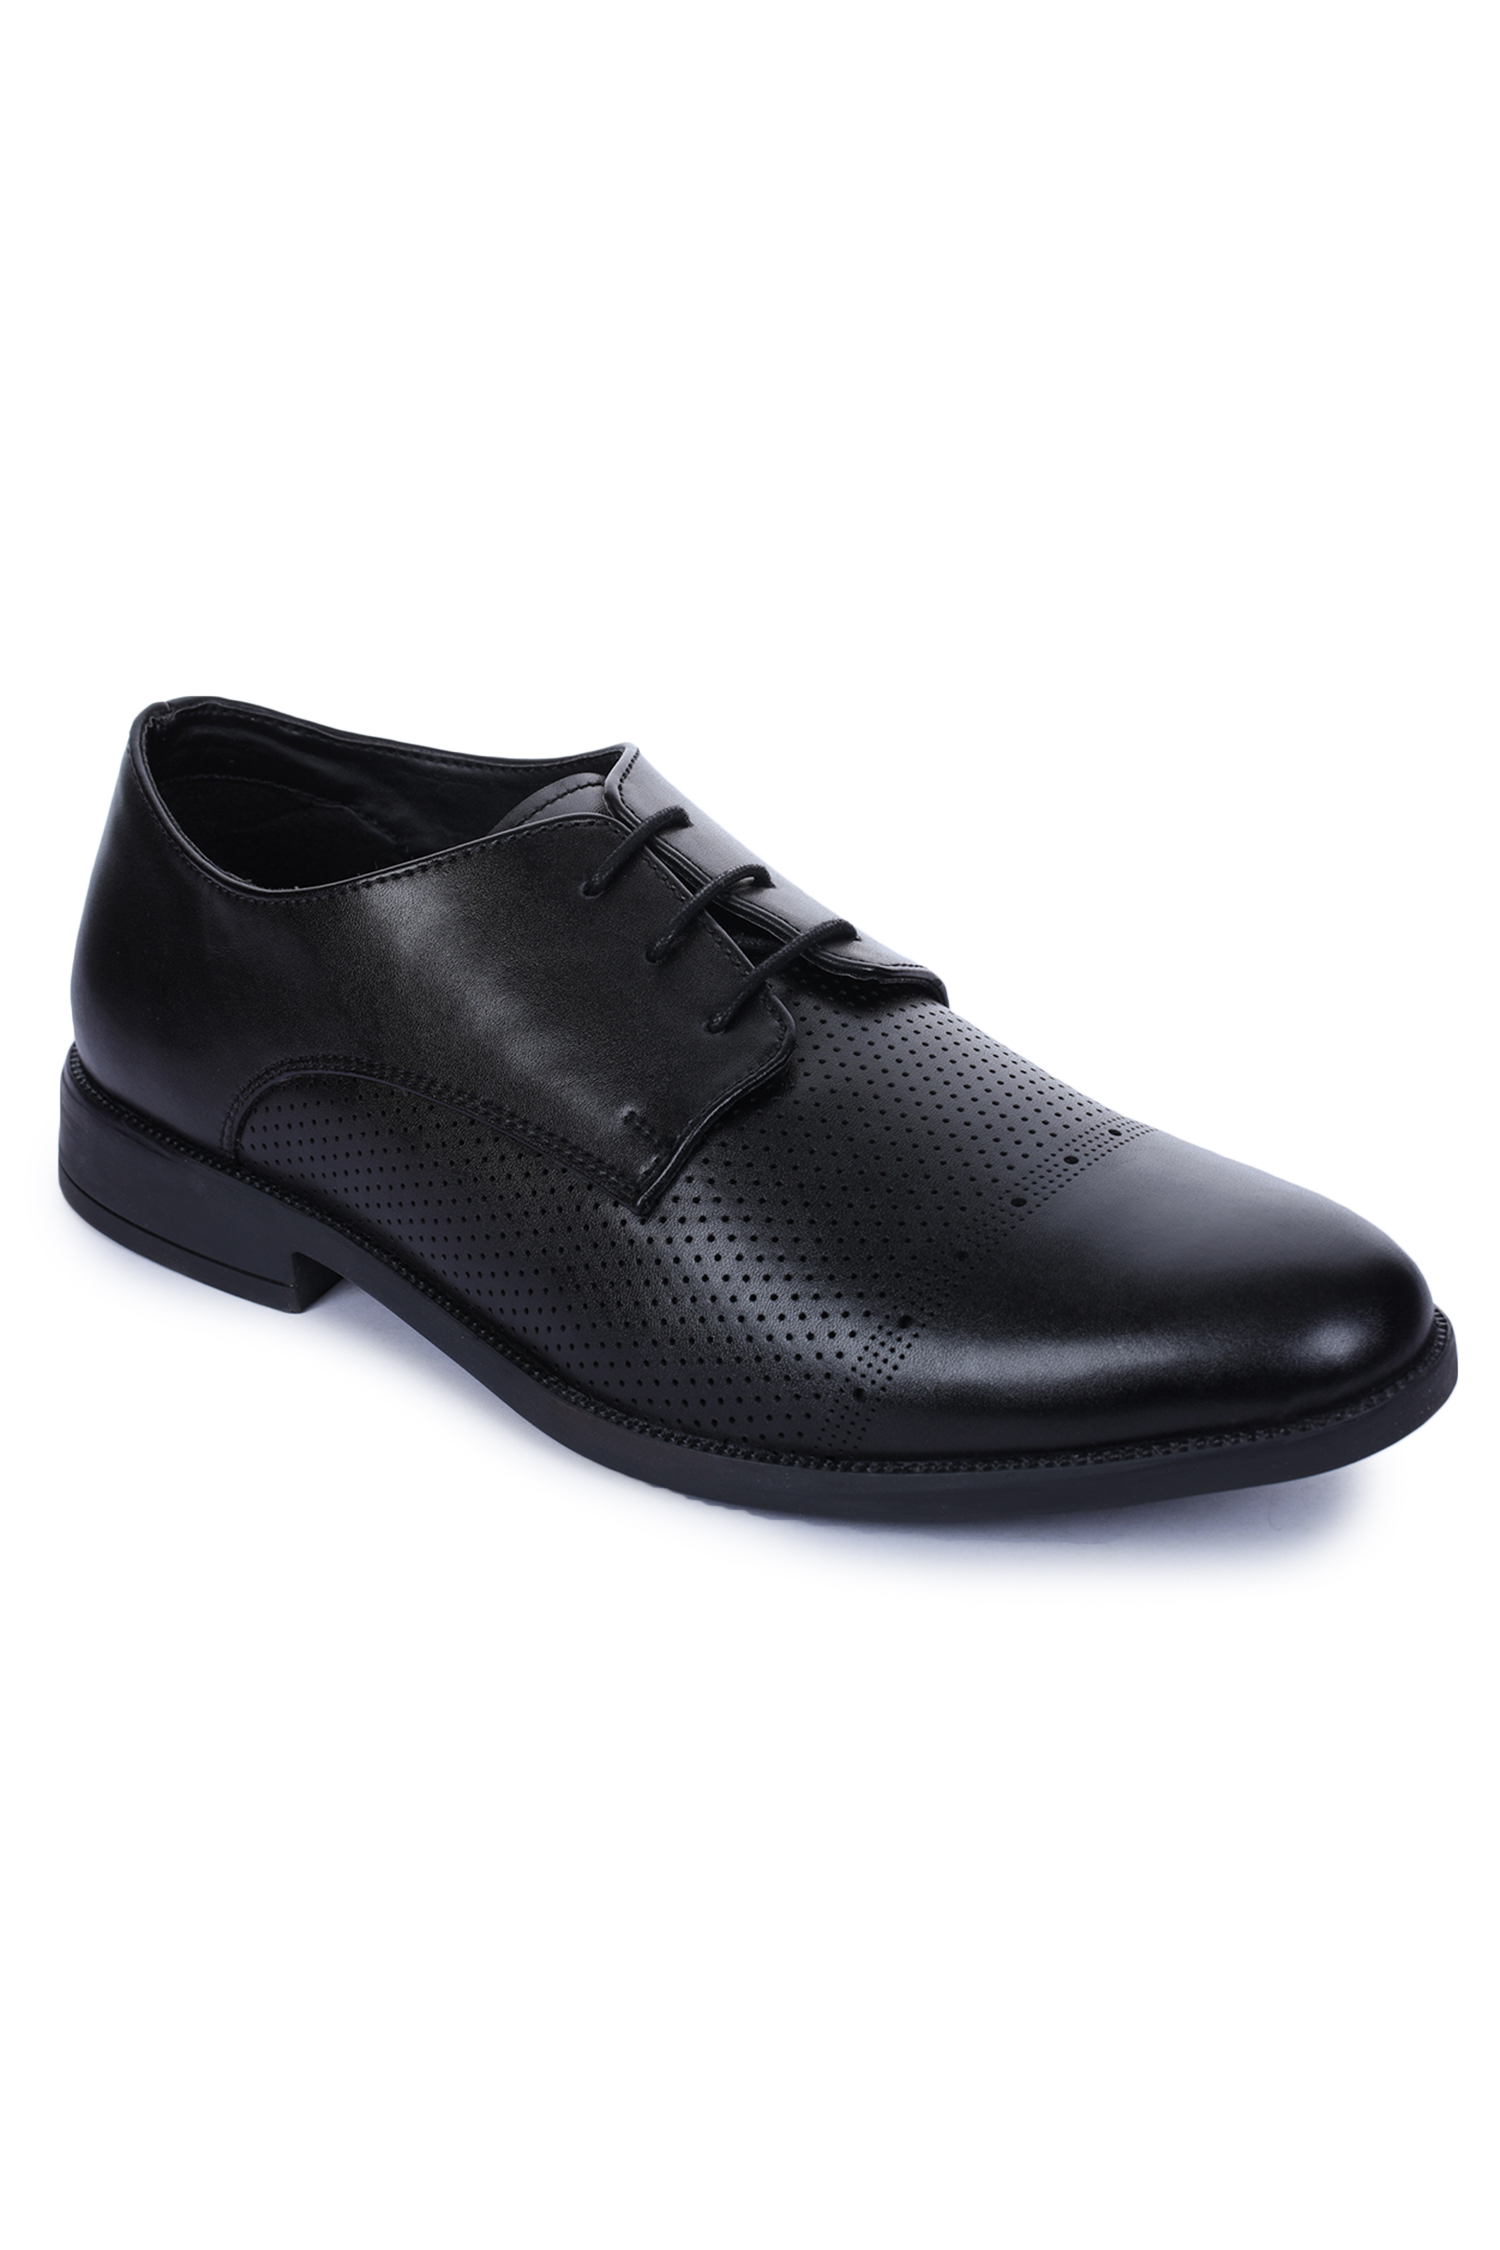 Liberty | Liberty Fortune Black Formal Derby Shoes A7-02_Black For - Men